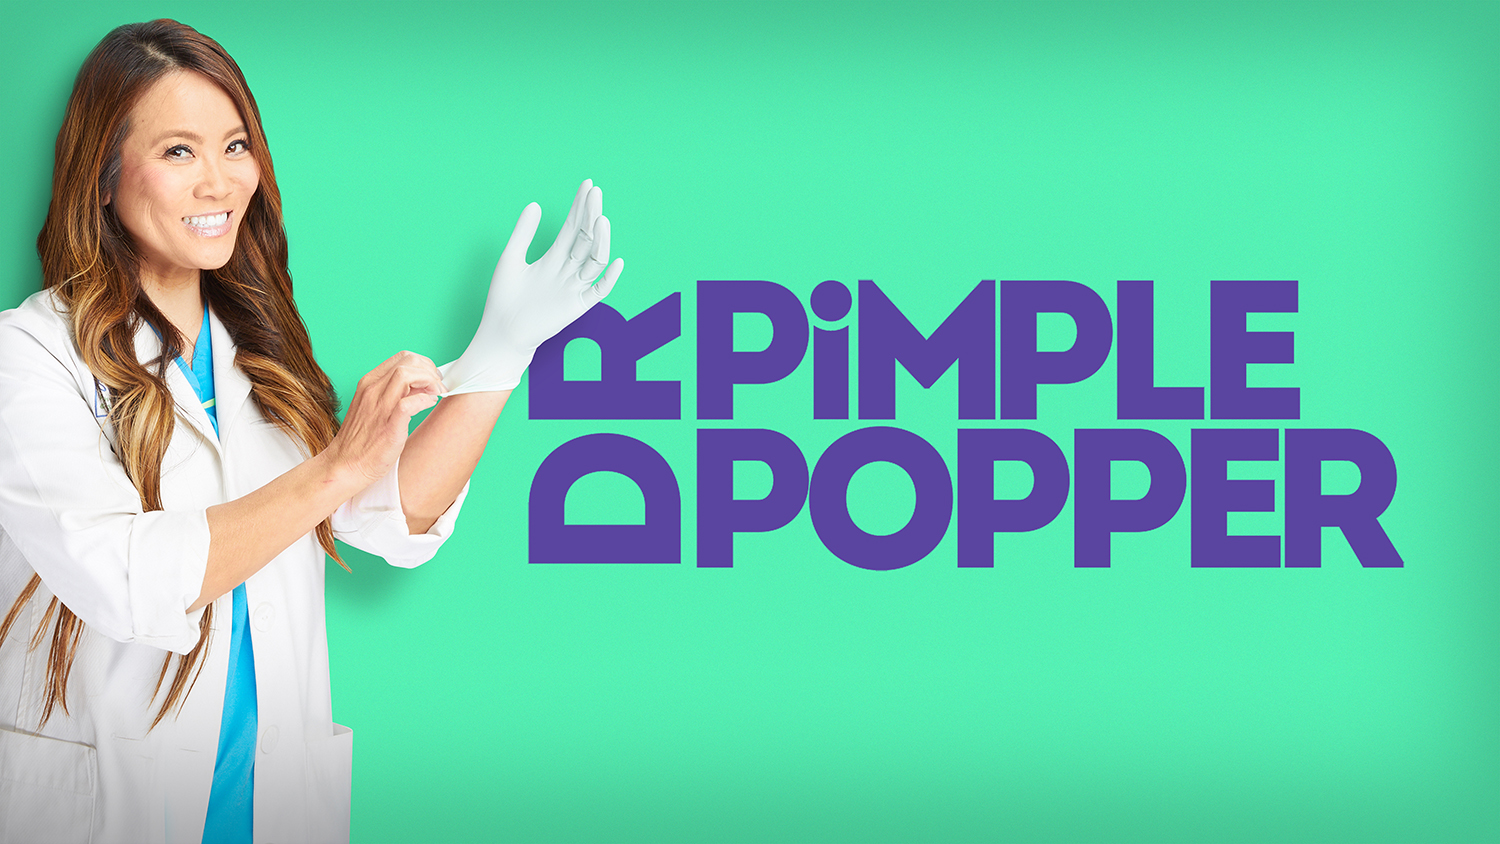 Dr Pimple Popper S2